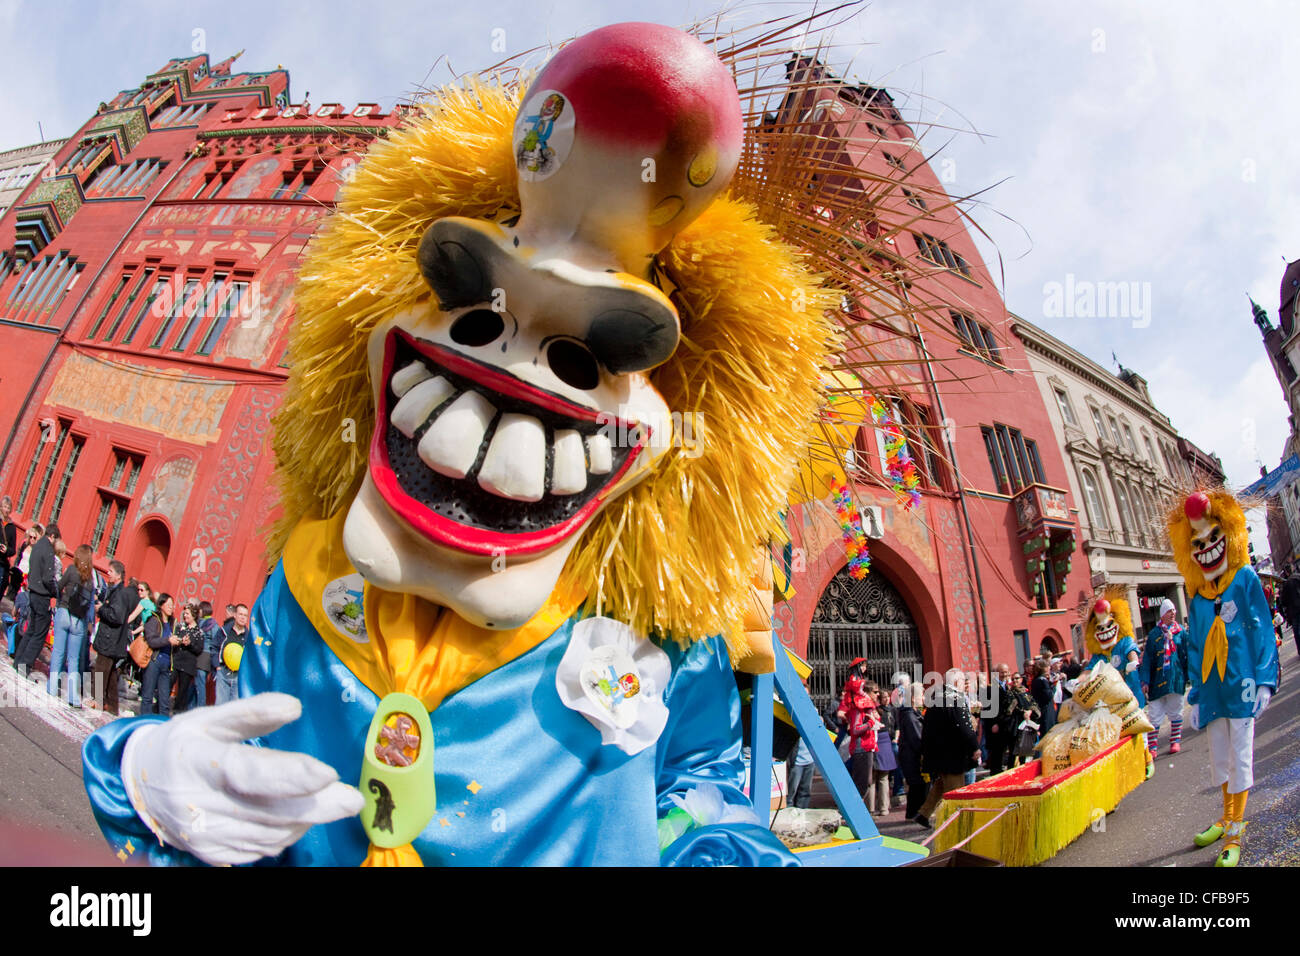 Carnival, carnival, town, city, event, canton, Basel, Switzerland, Europe, town, city, Basel carnival, marketplace, Stock Photo